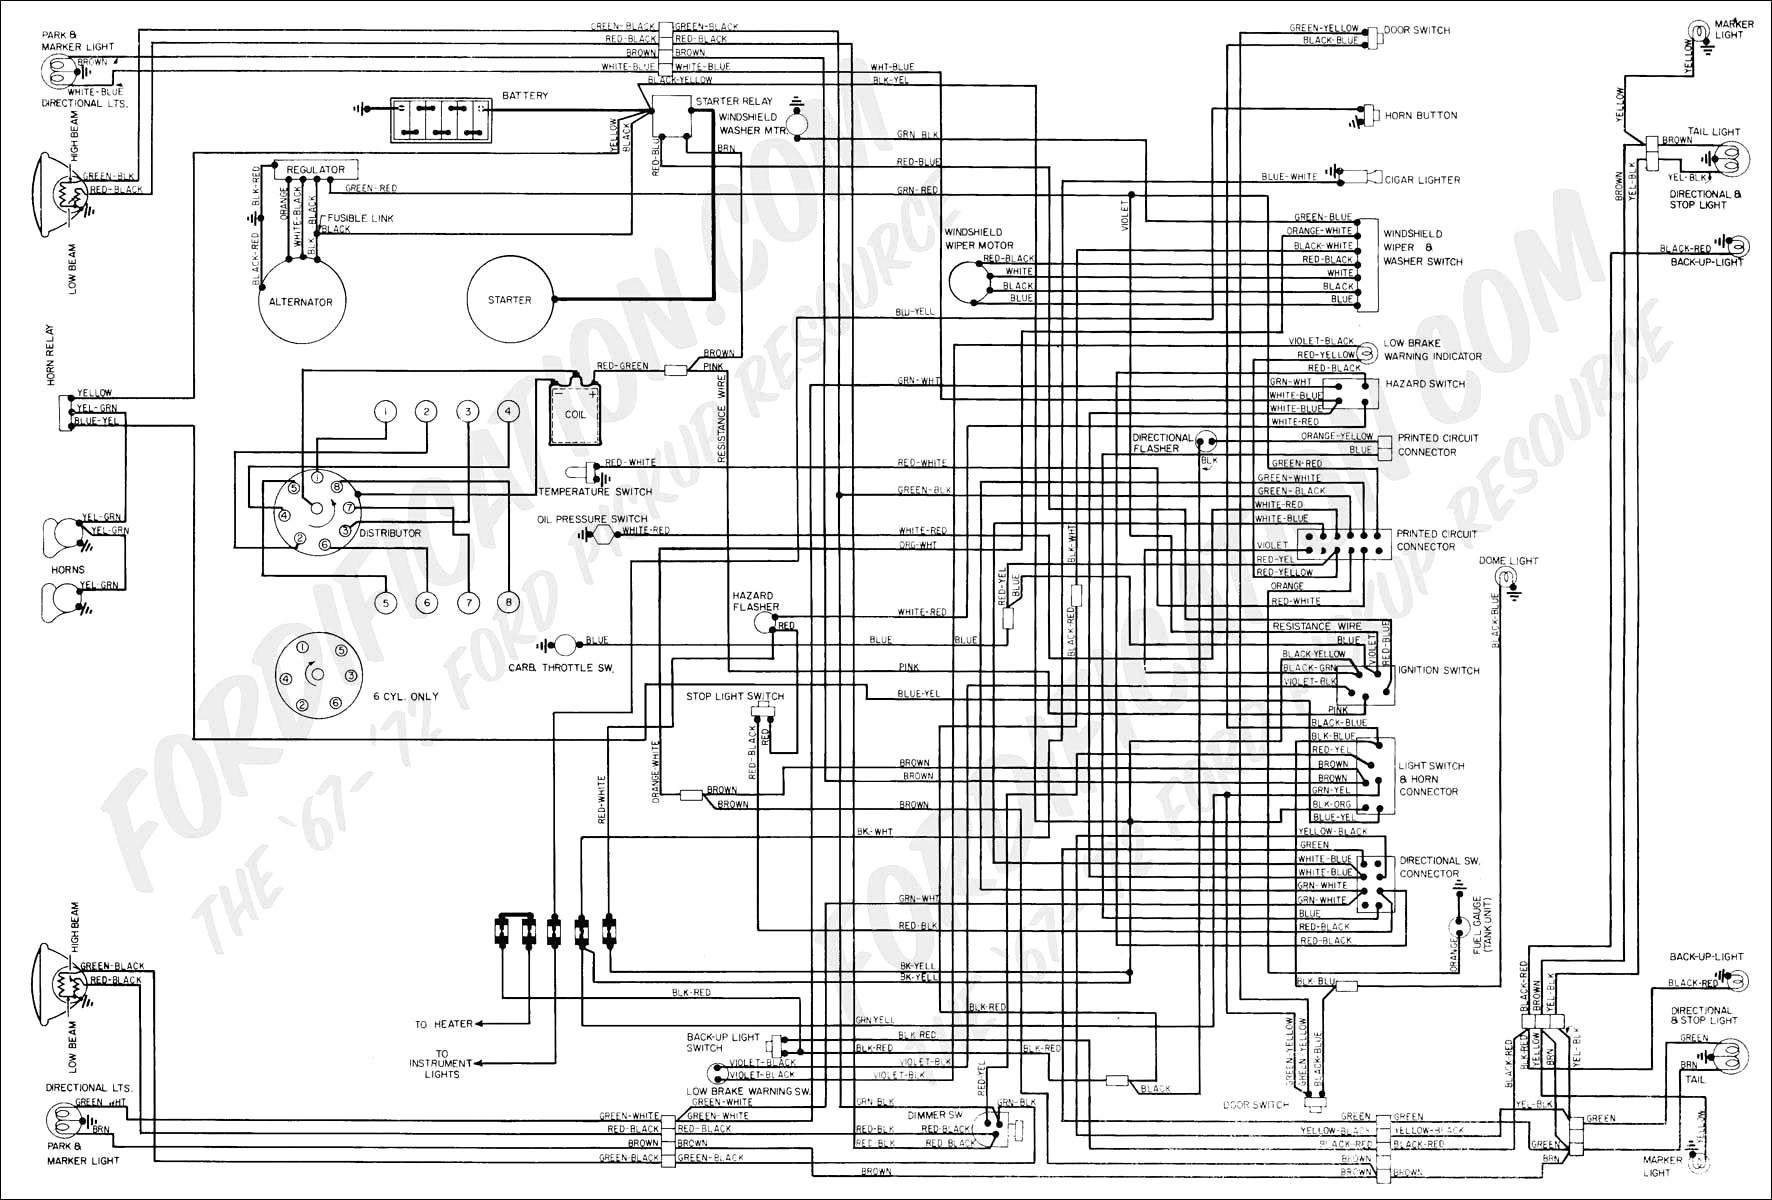 Wire Diagram for 2002 F550 Tail Lights 2001 F350 Wiring Diagram Wiring Diagram Data Of Wire Diagram for 2002 F550 Tail Lights 1973 1979 ford Truck Wiring Diagrams & Schematics